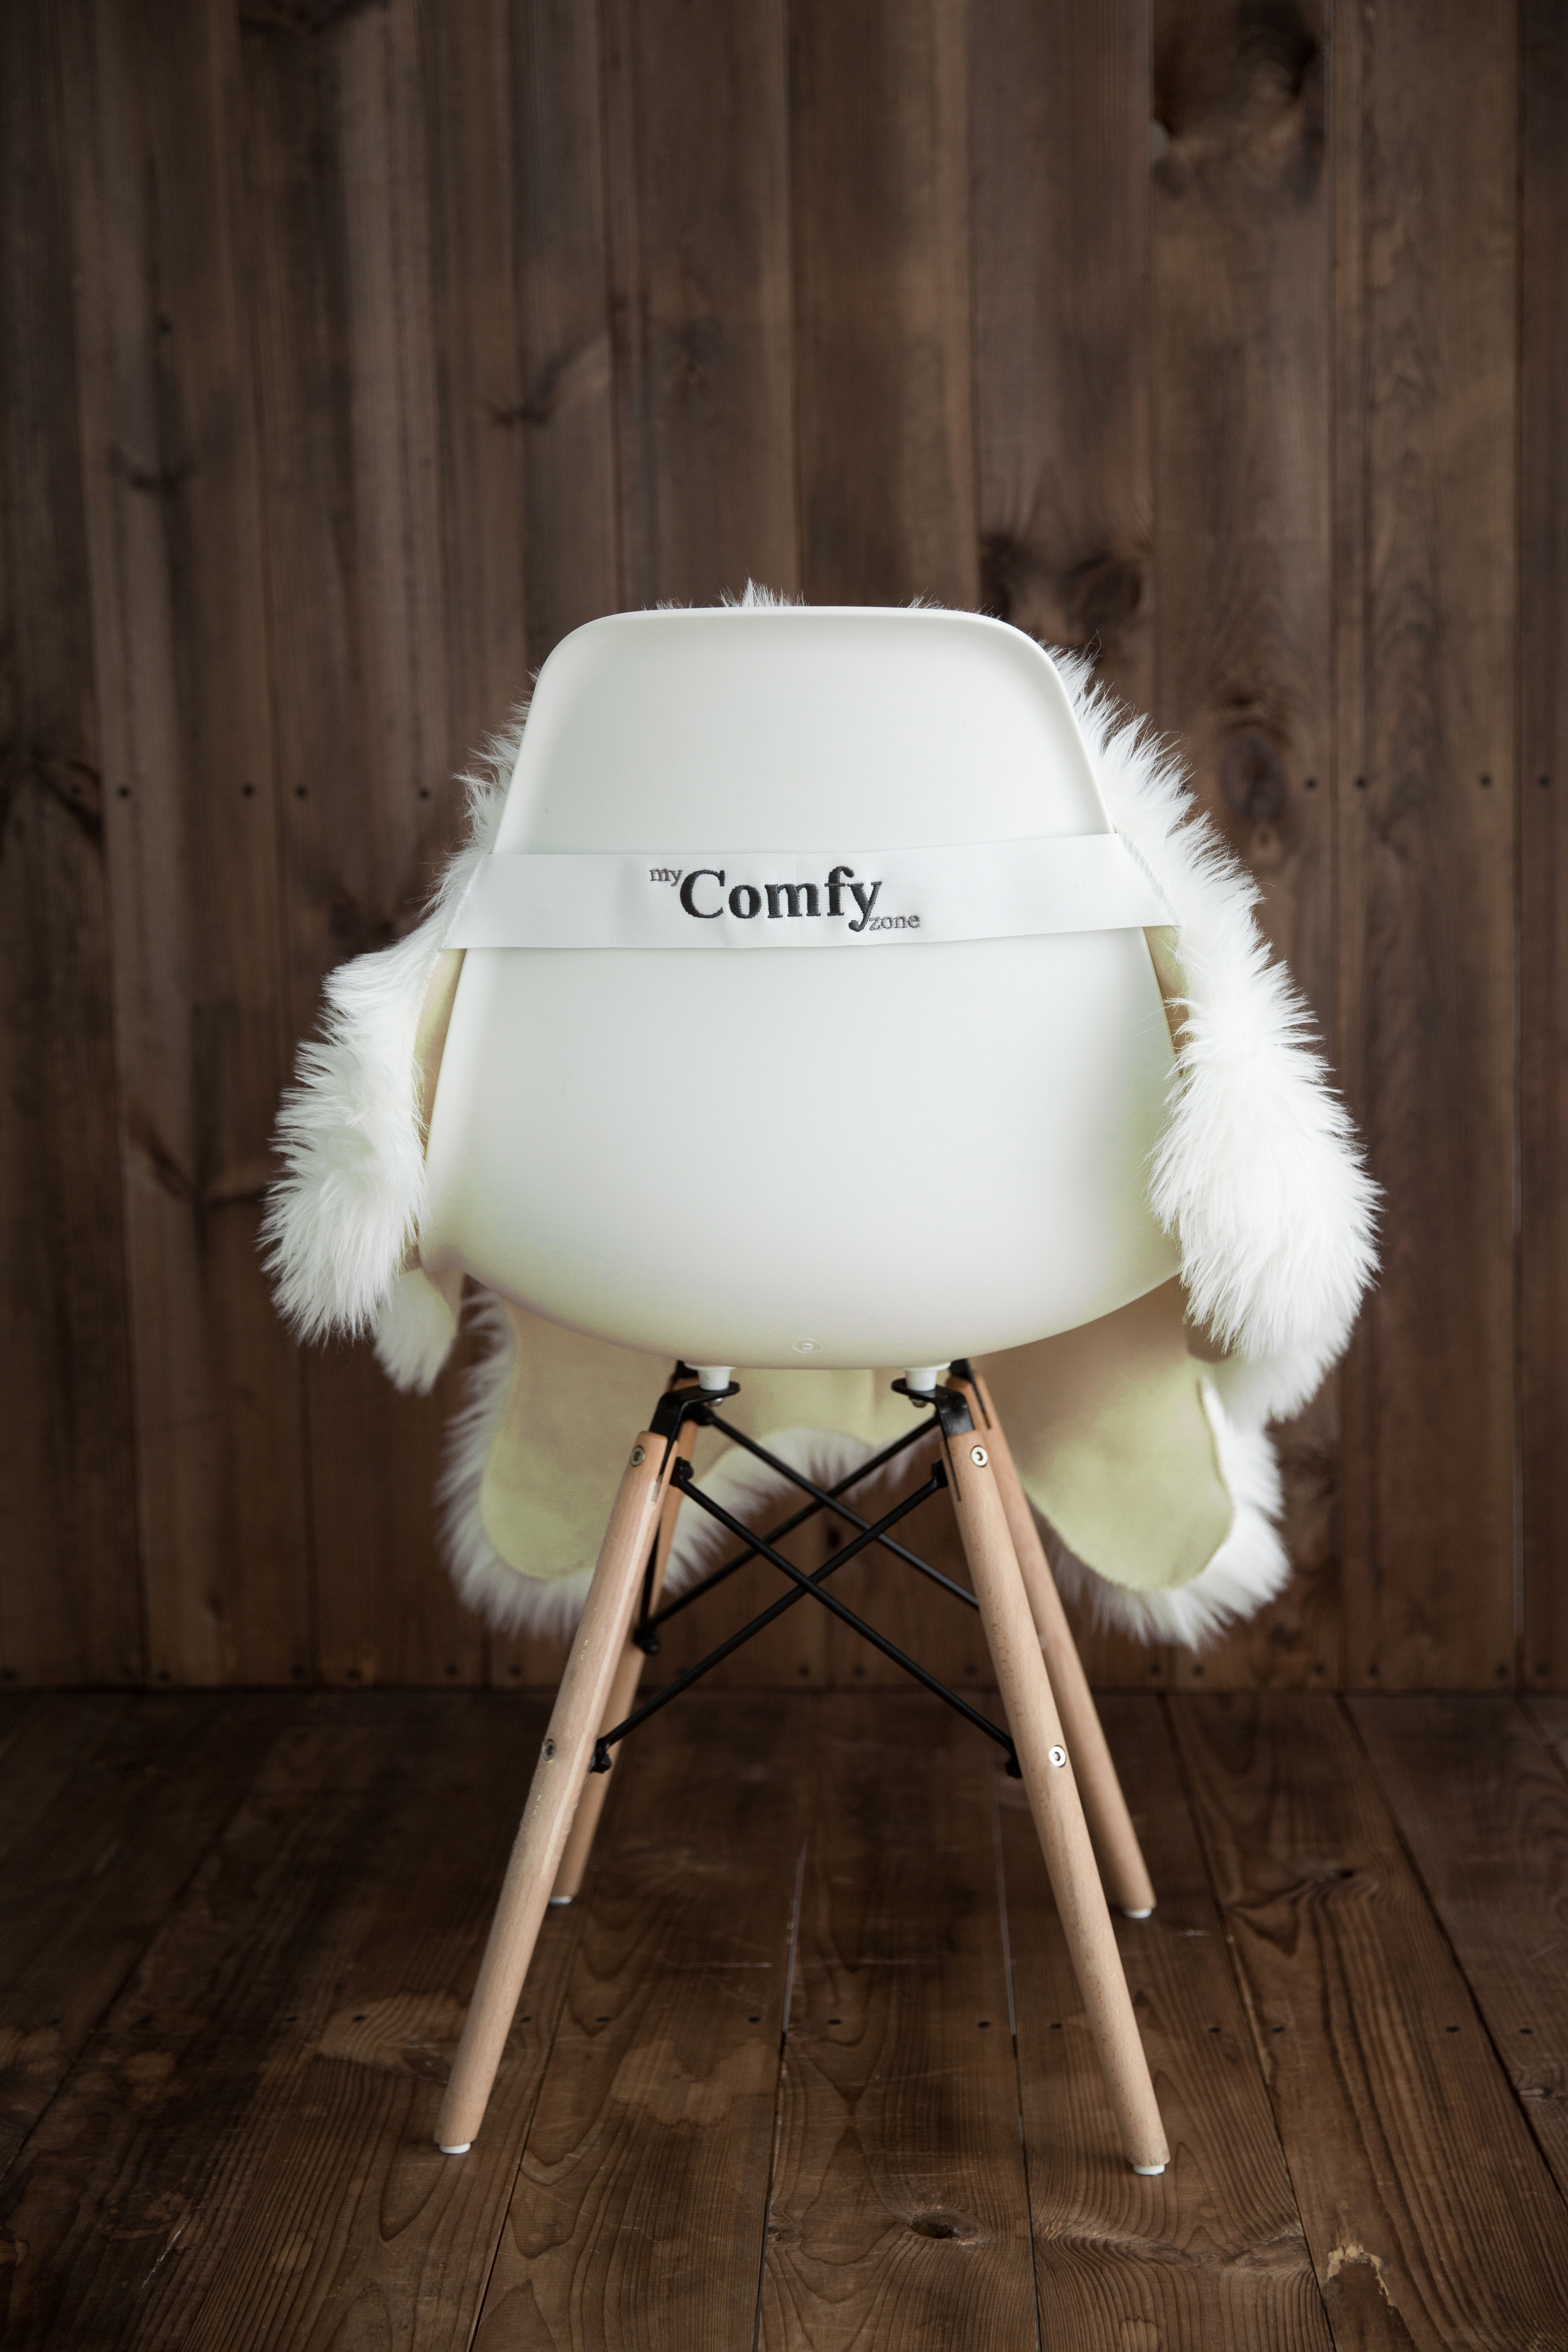 faux fur chair cover lazy boy chairs nz sheepskin rug seat pad area rugs for bedroom sofa floor vanity nursery decor ivory